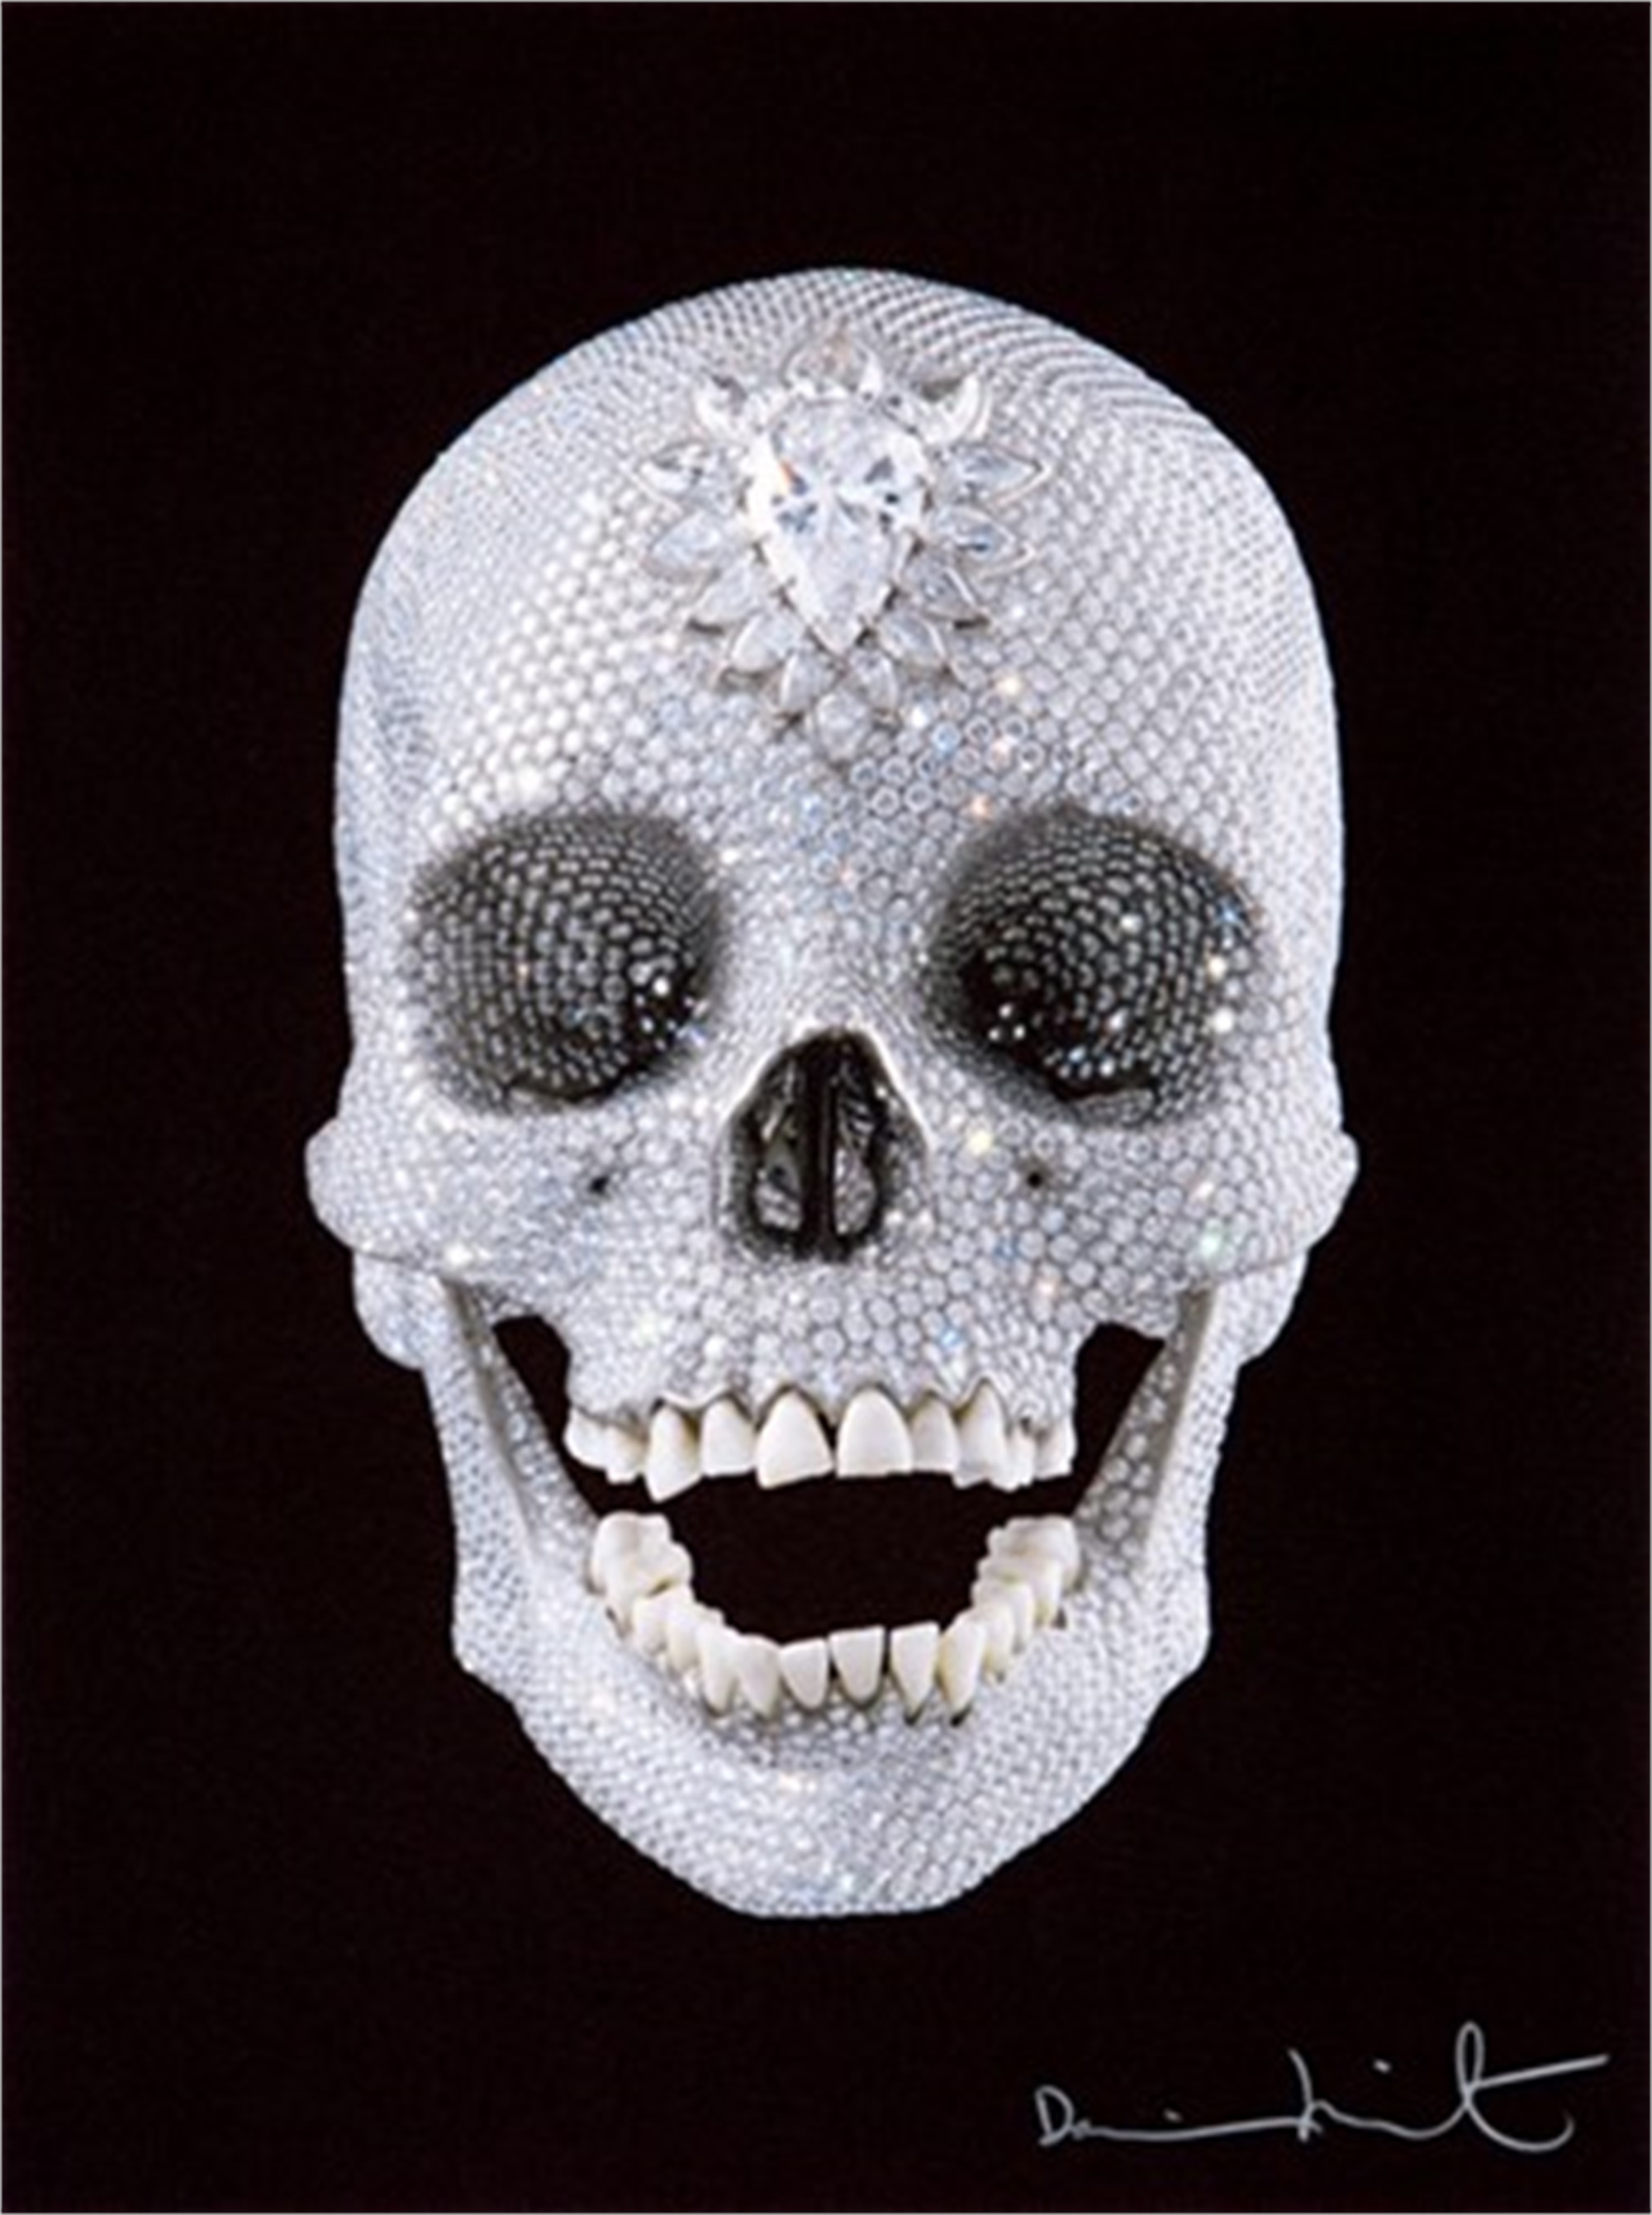 For the Love of God, Believe by Damien Hirst